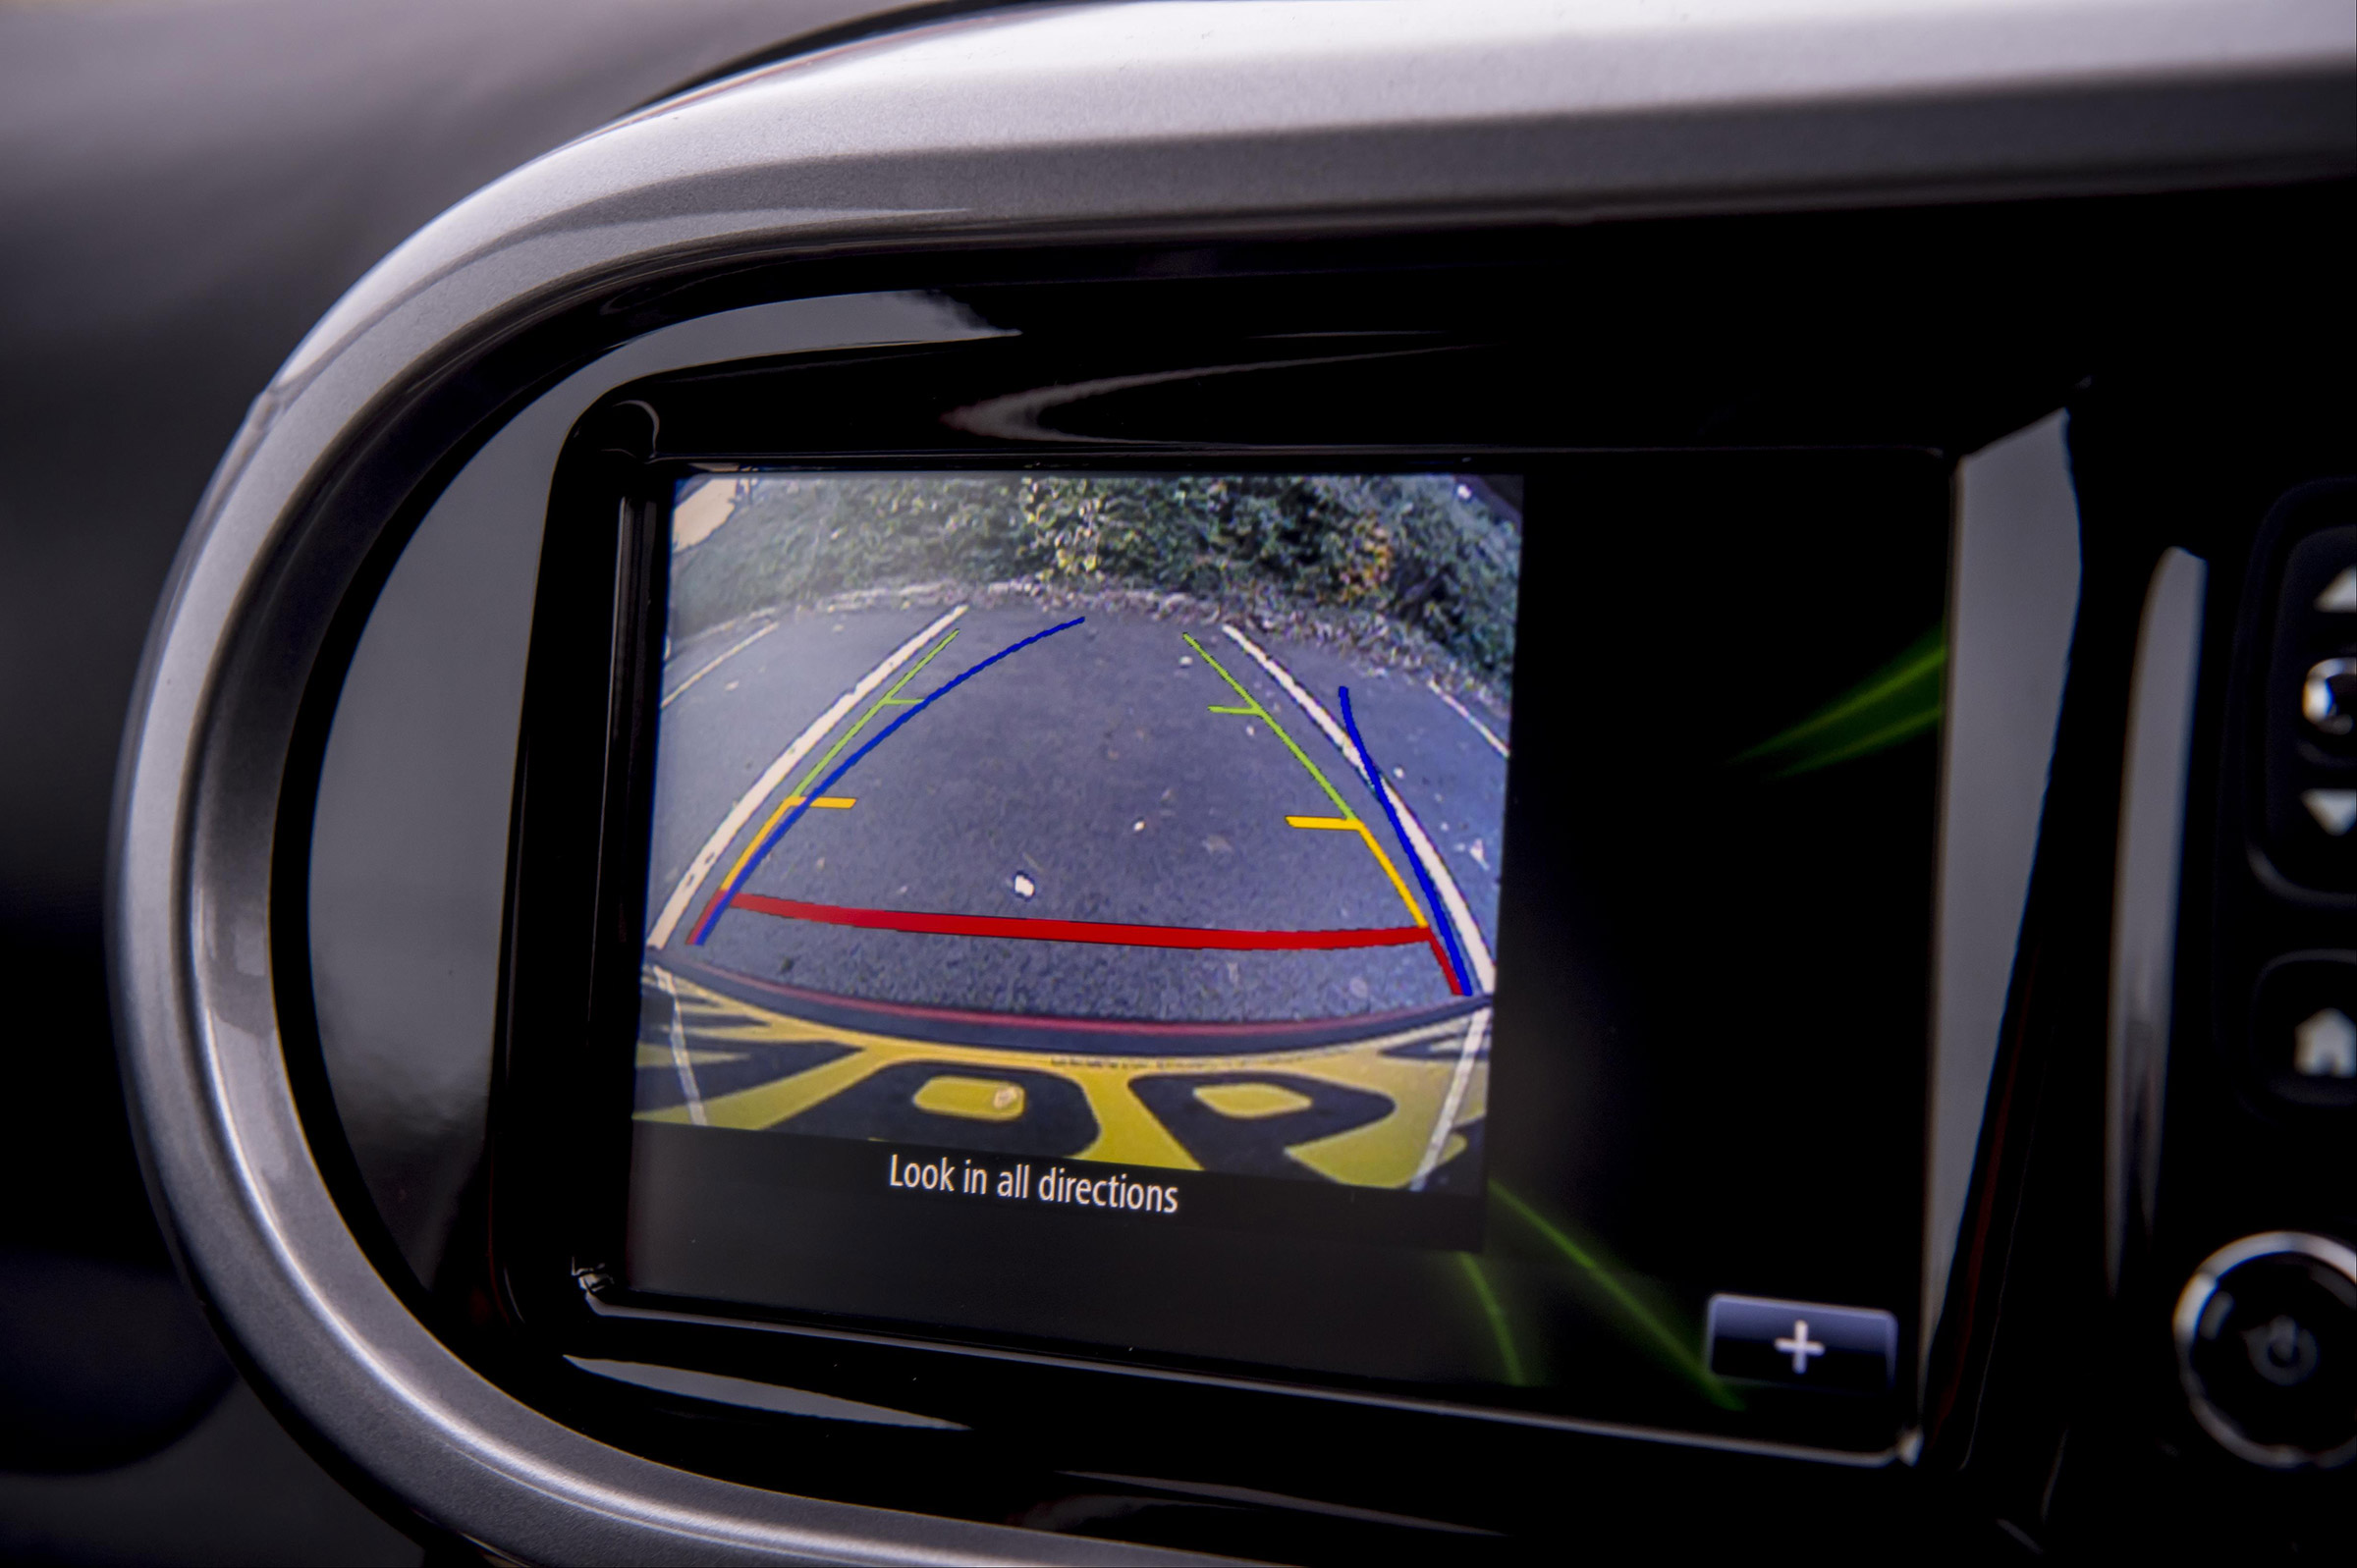 2017 Renault Twingo GT Interior View Rear Parking Camera (Photo 14 of 20)